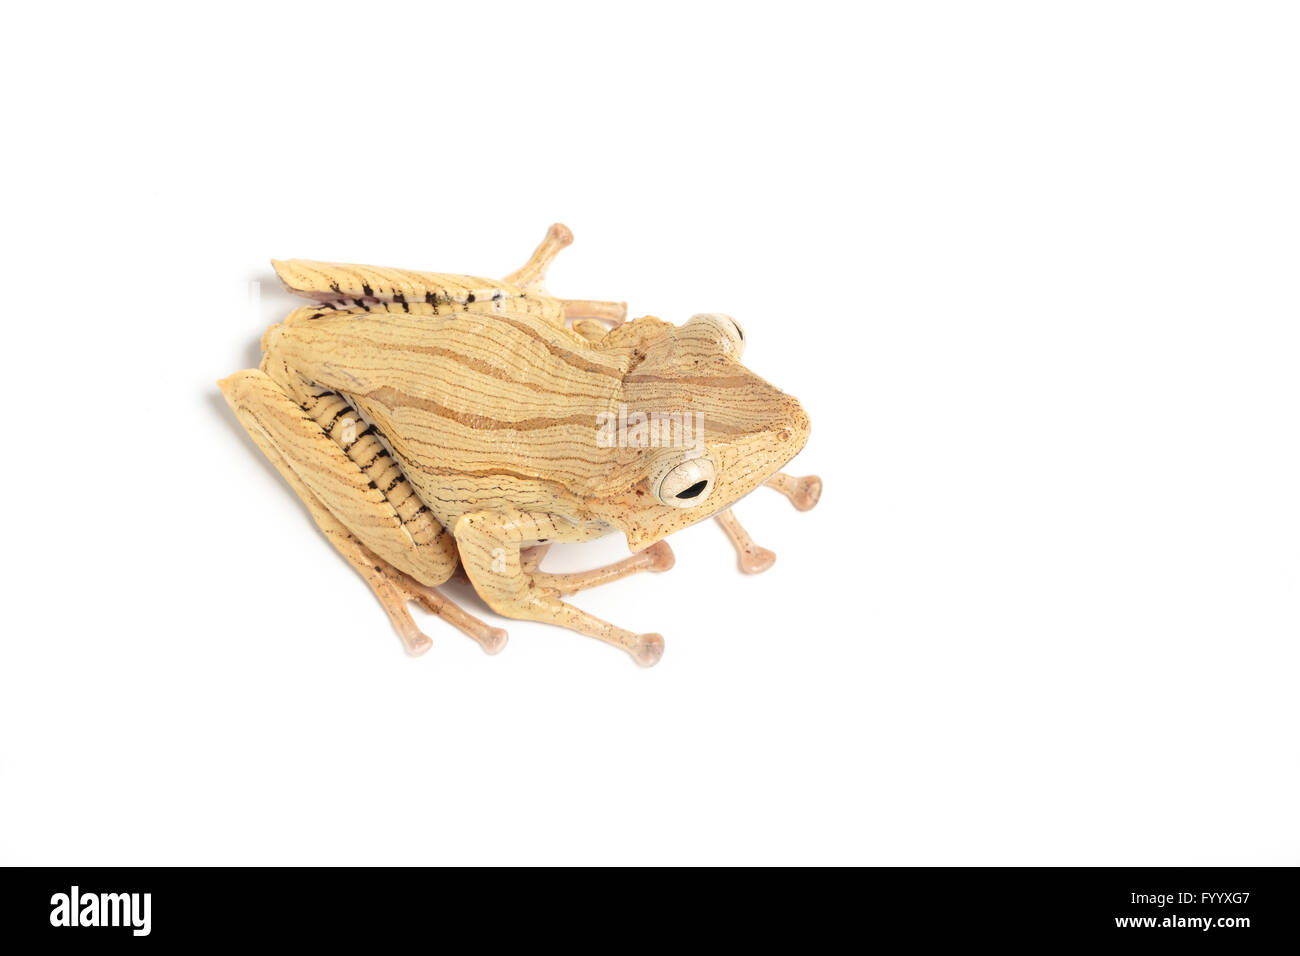 File-eared Tree Frog, Polypedates otophilus, a member of the Rhacophoridae family, SE Asia (captive) - Stock Image